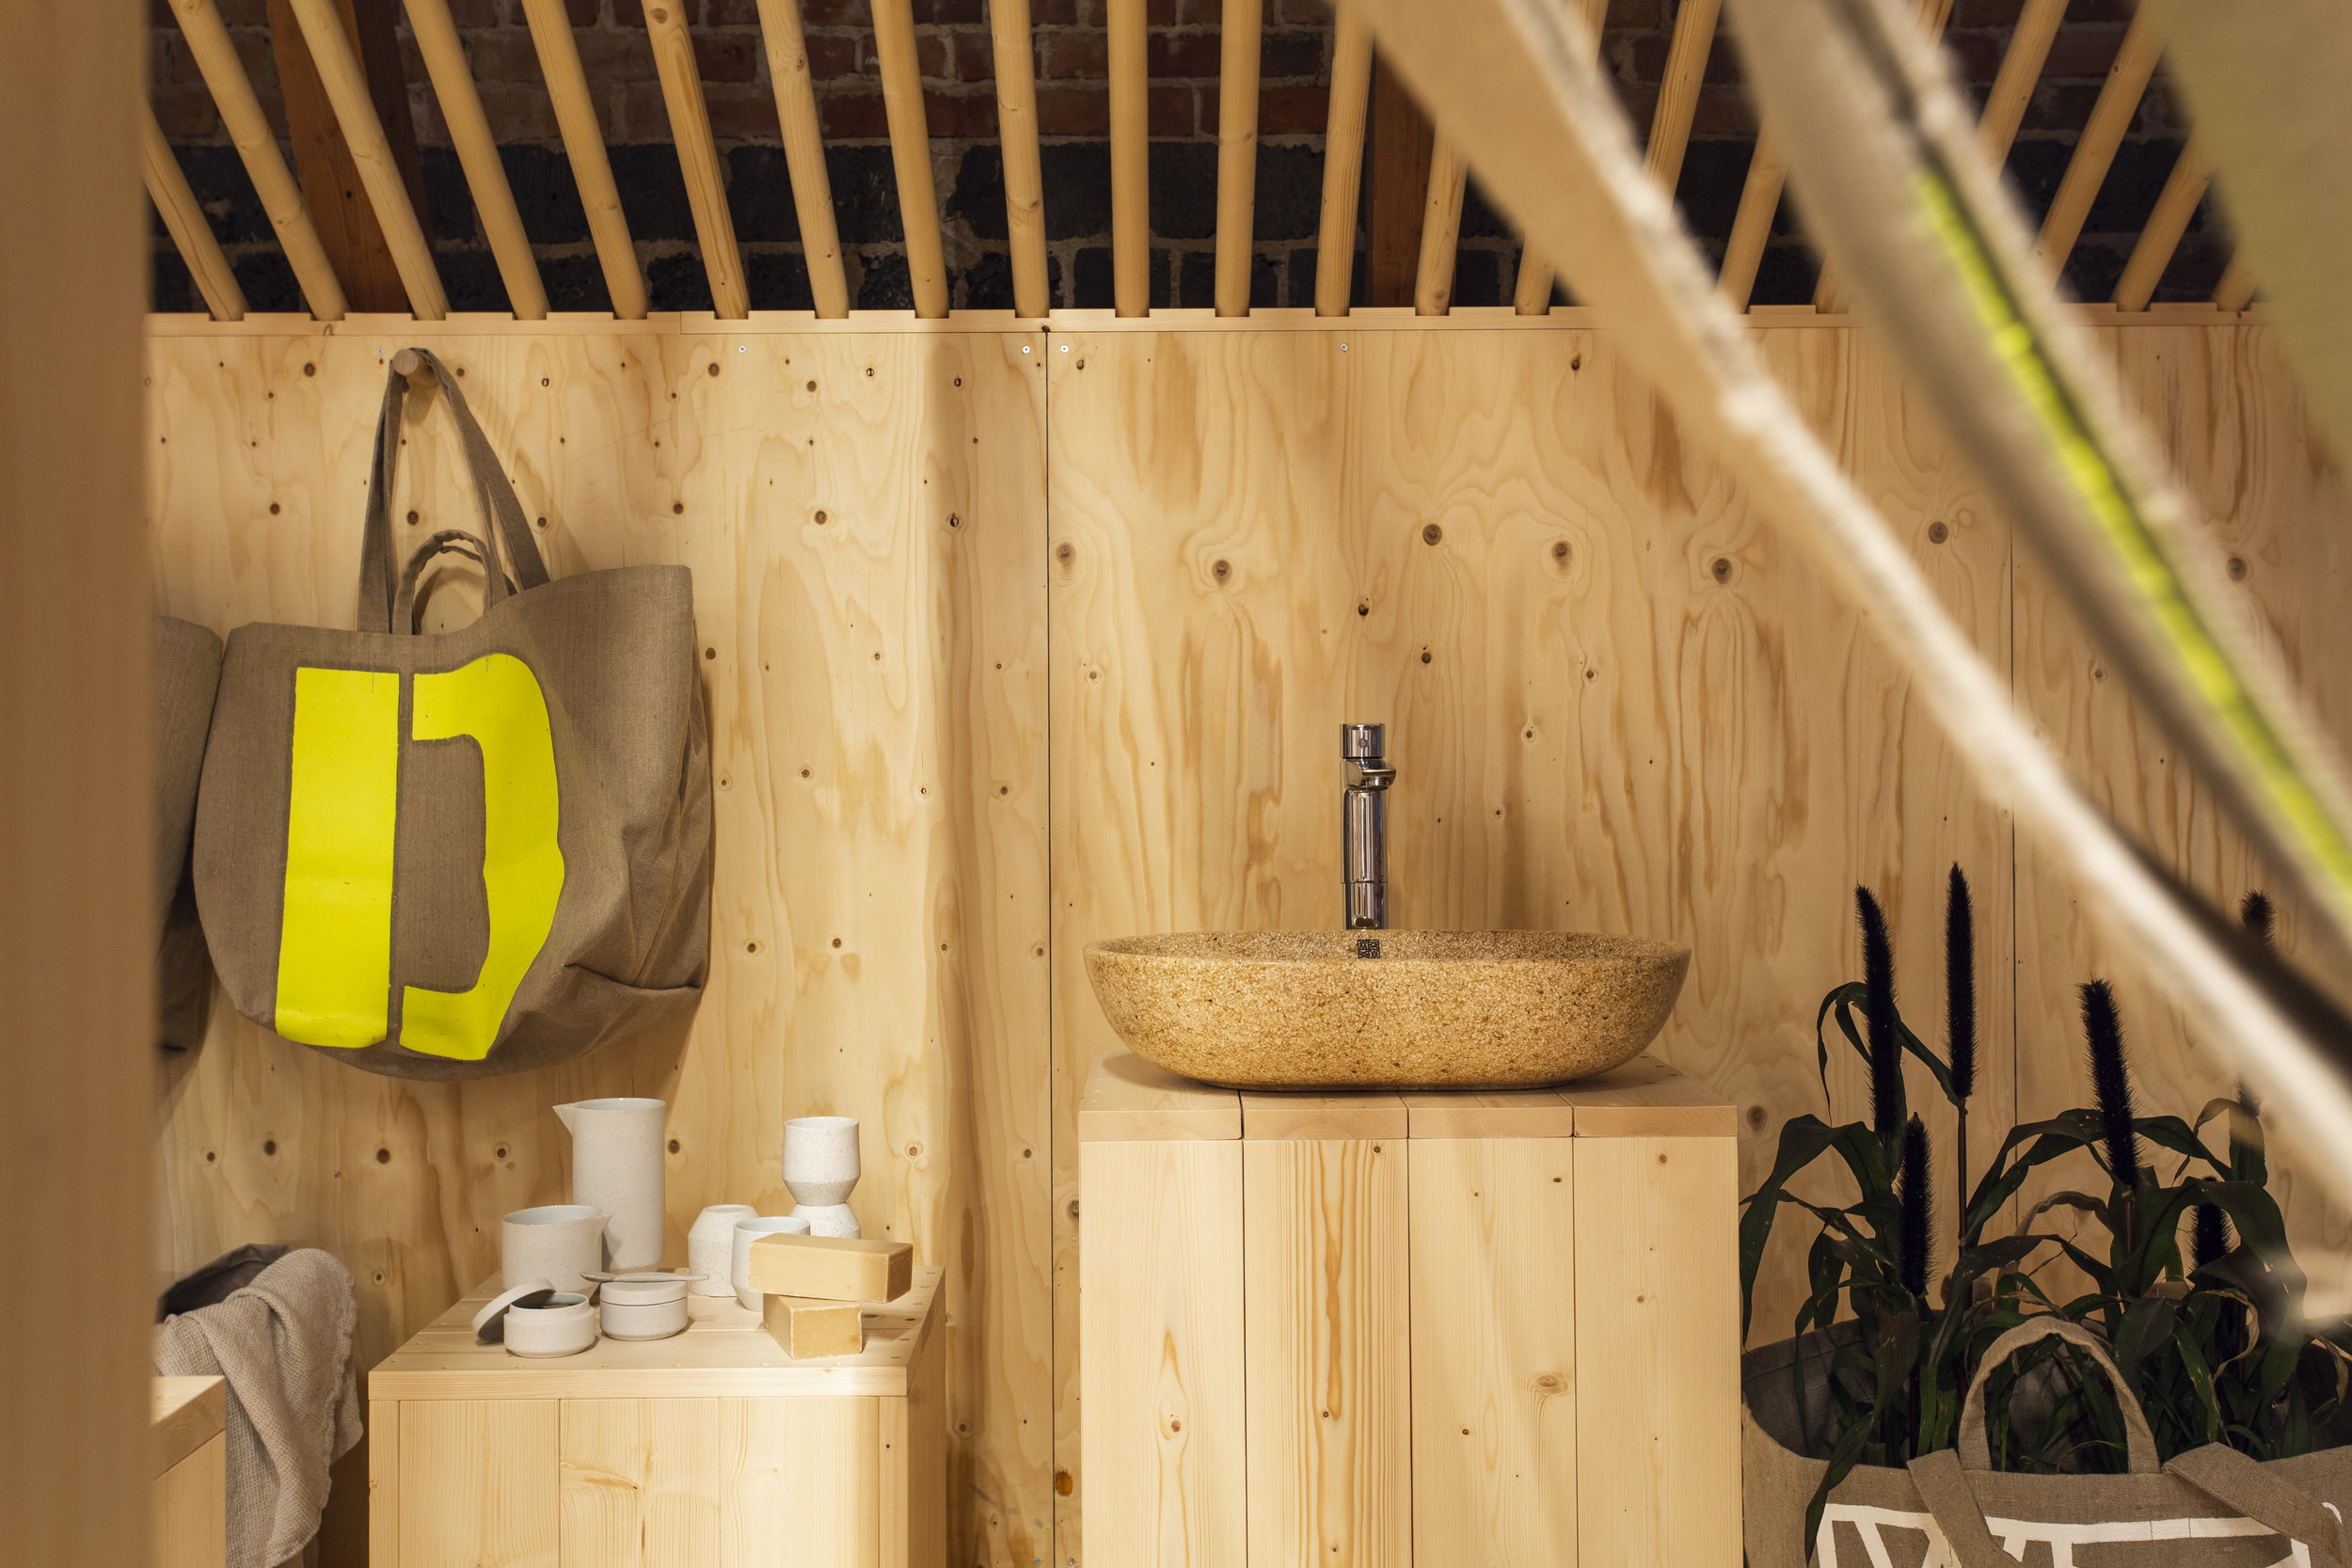 9_Bathroom_Fiskars_Summer_House_Kerttu_Penttila-9289.jpg